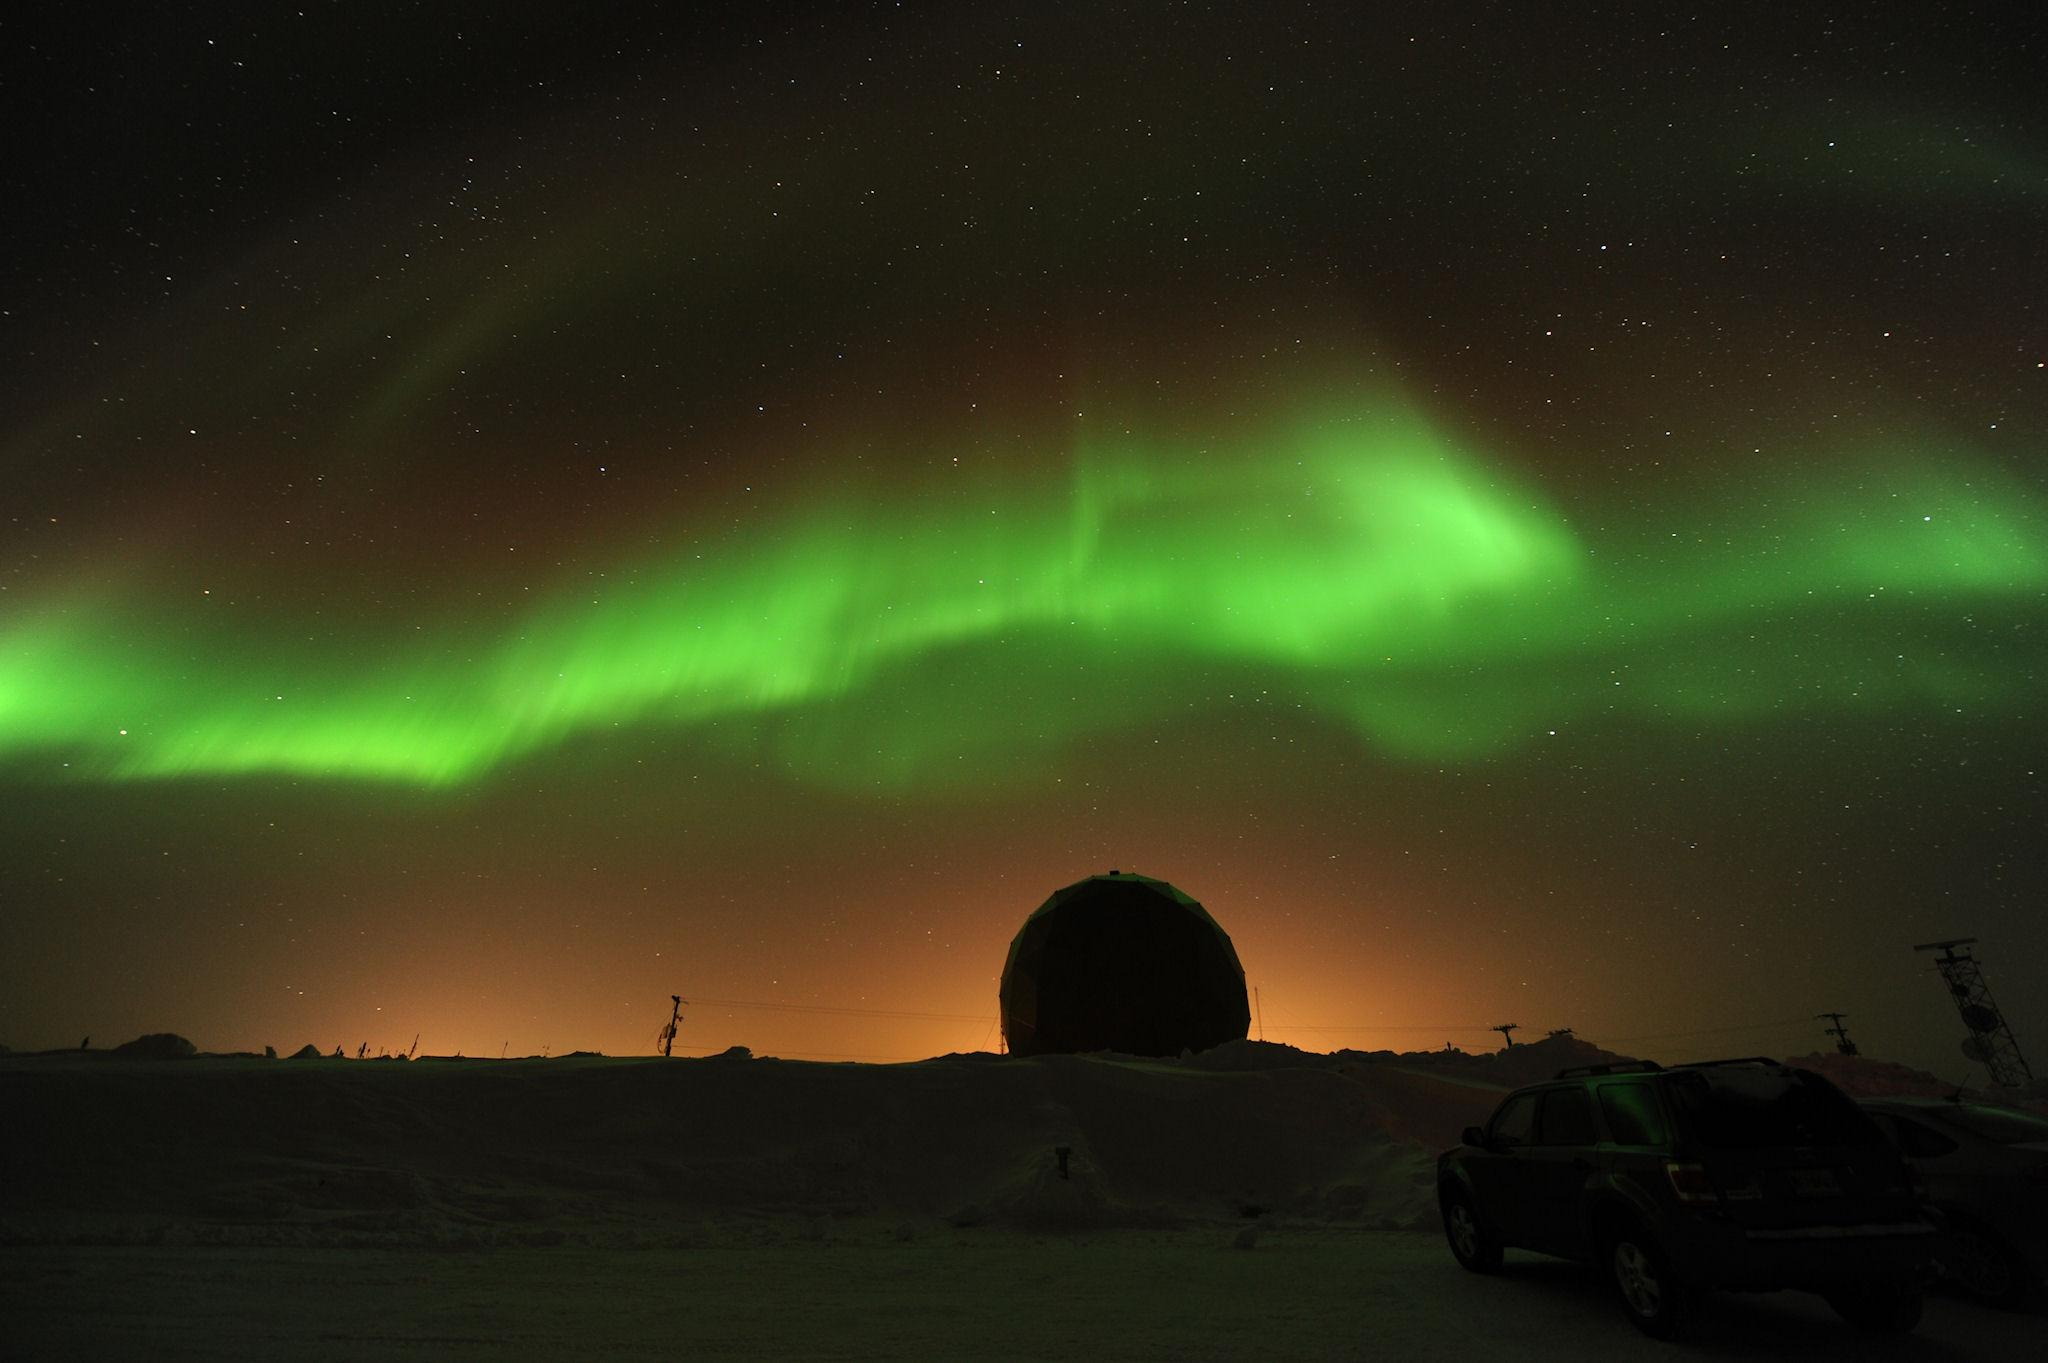 nasa aurora - photo #20